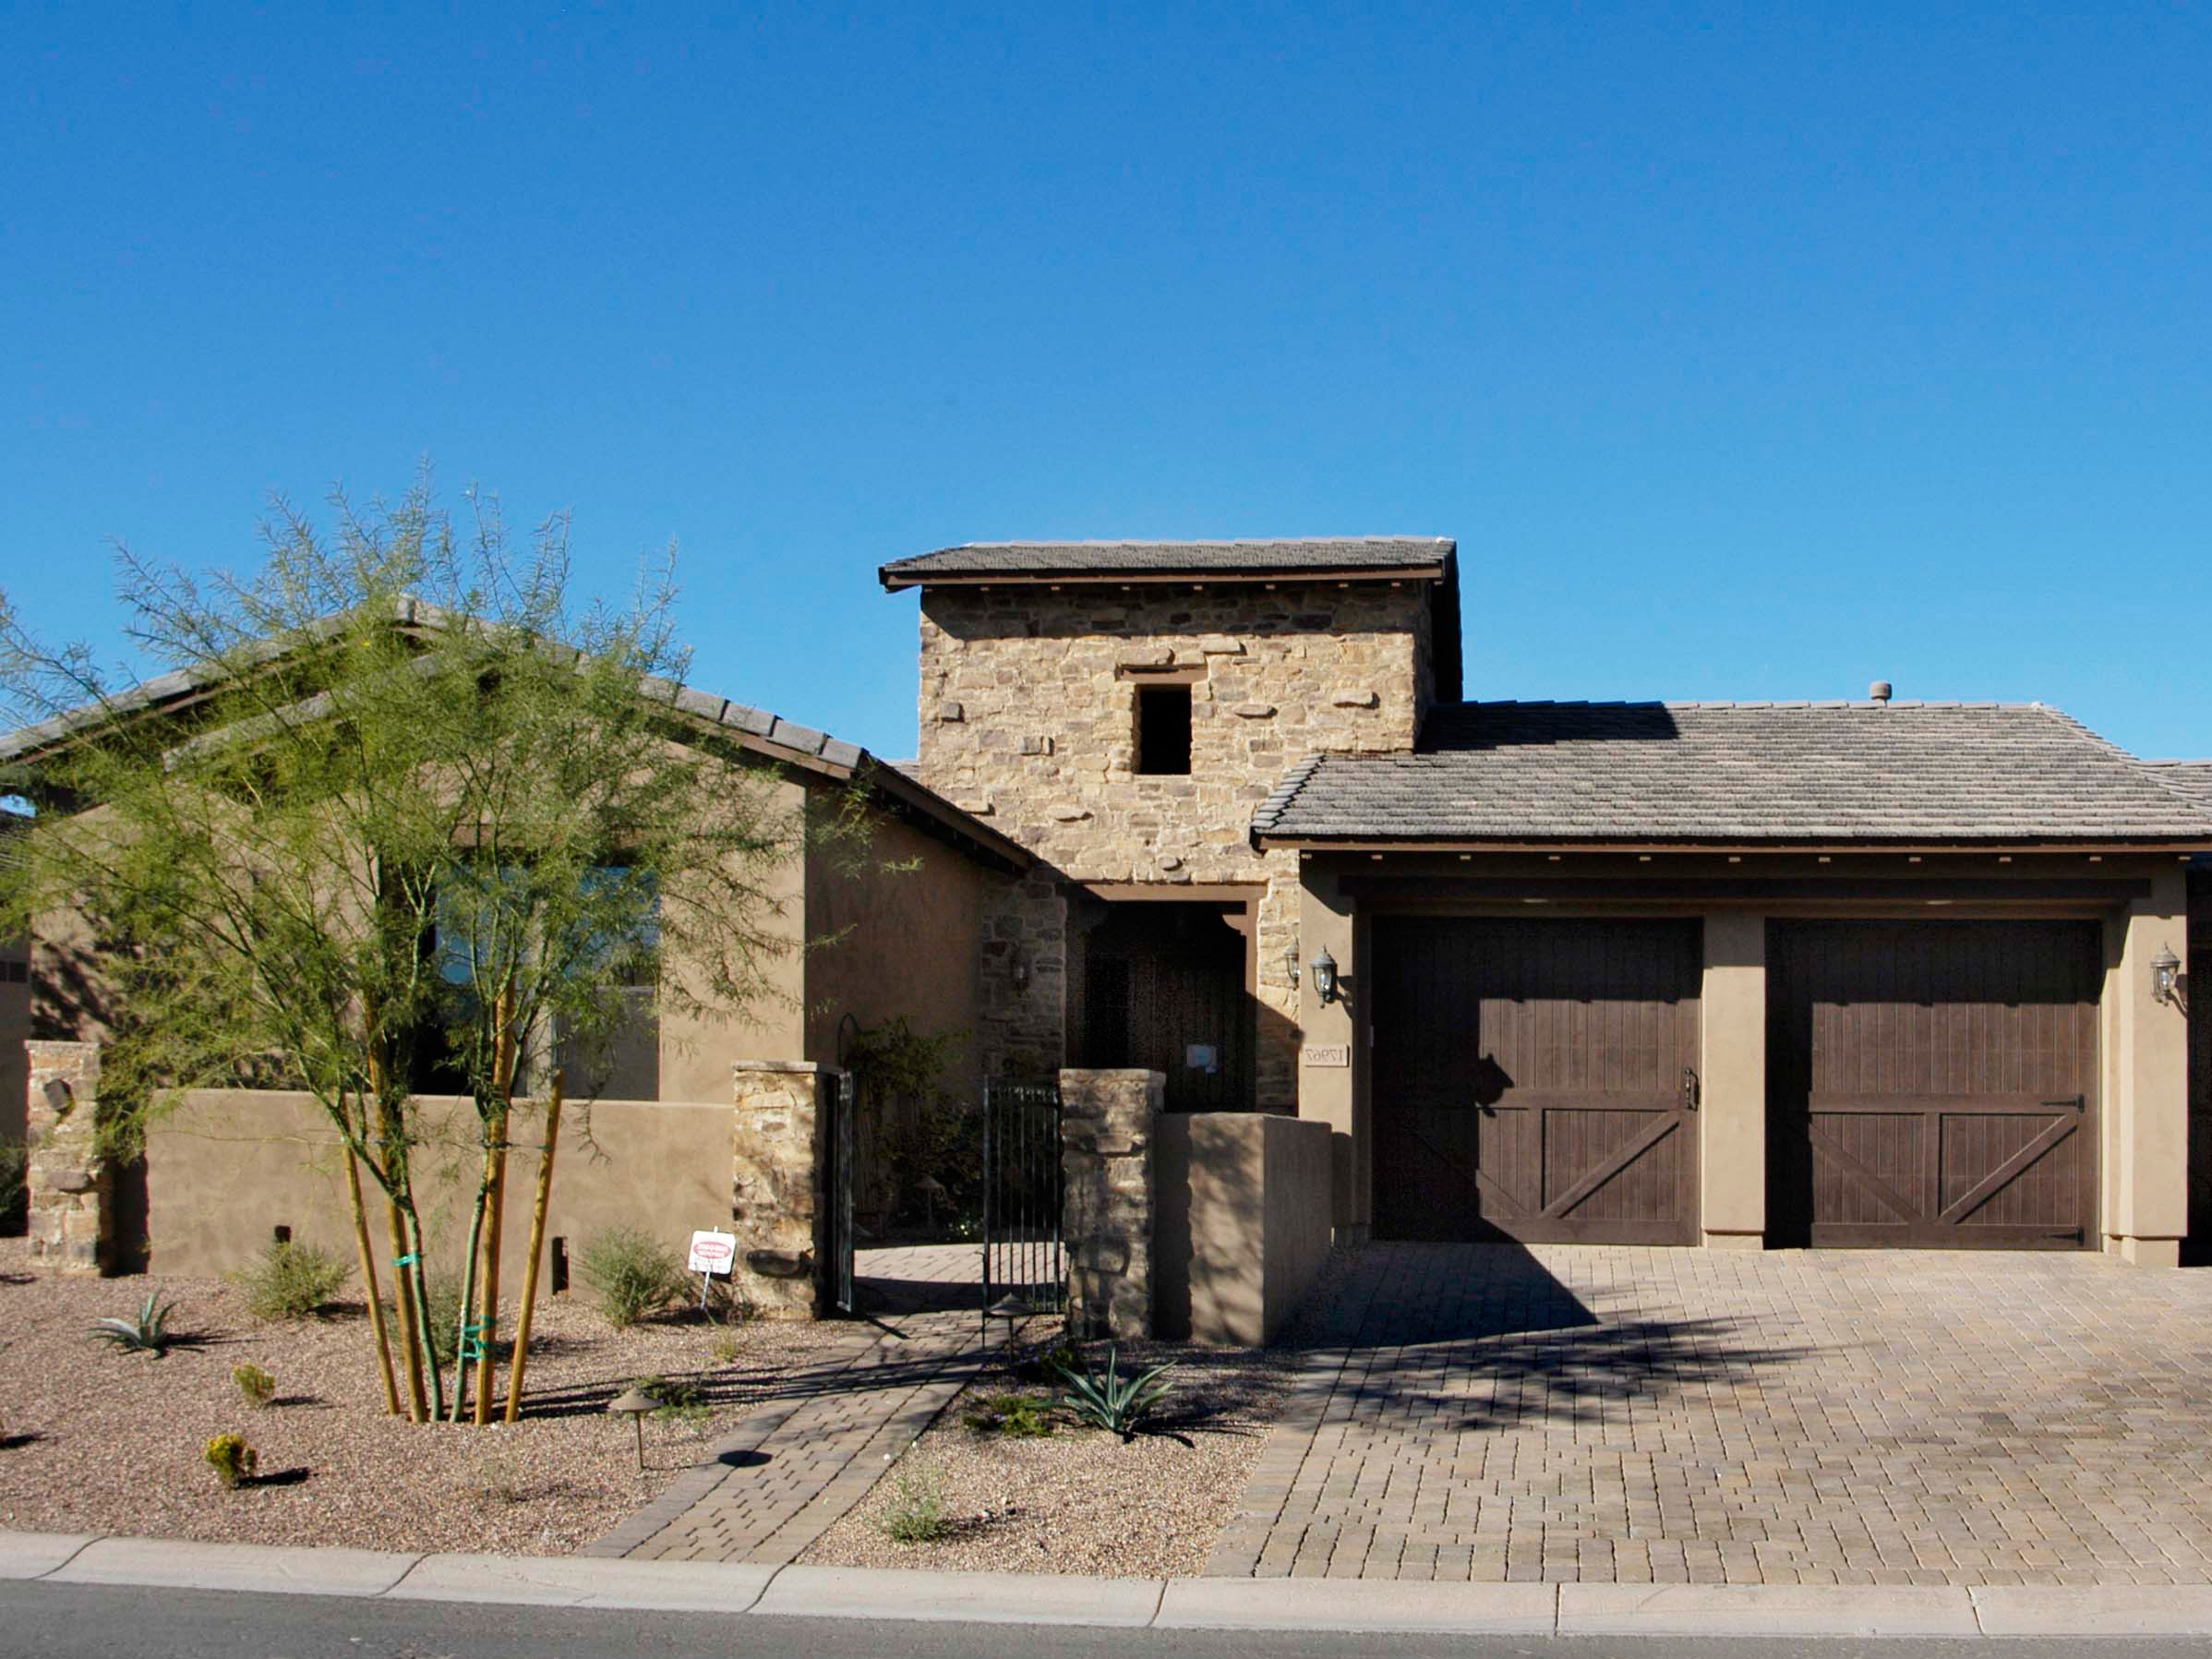 Southwestern Home Garage With Stucco And Stone Facade (Image 31 of 38)